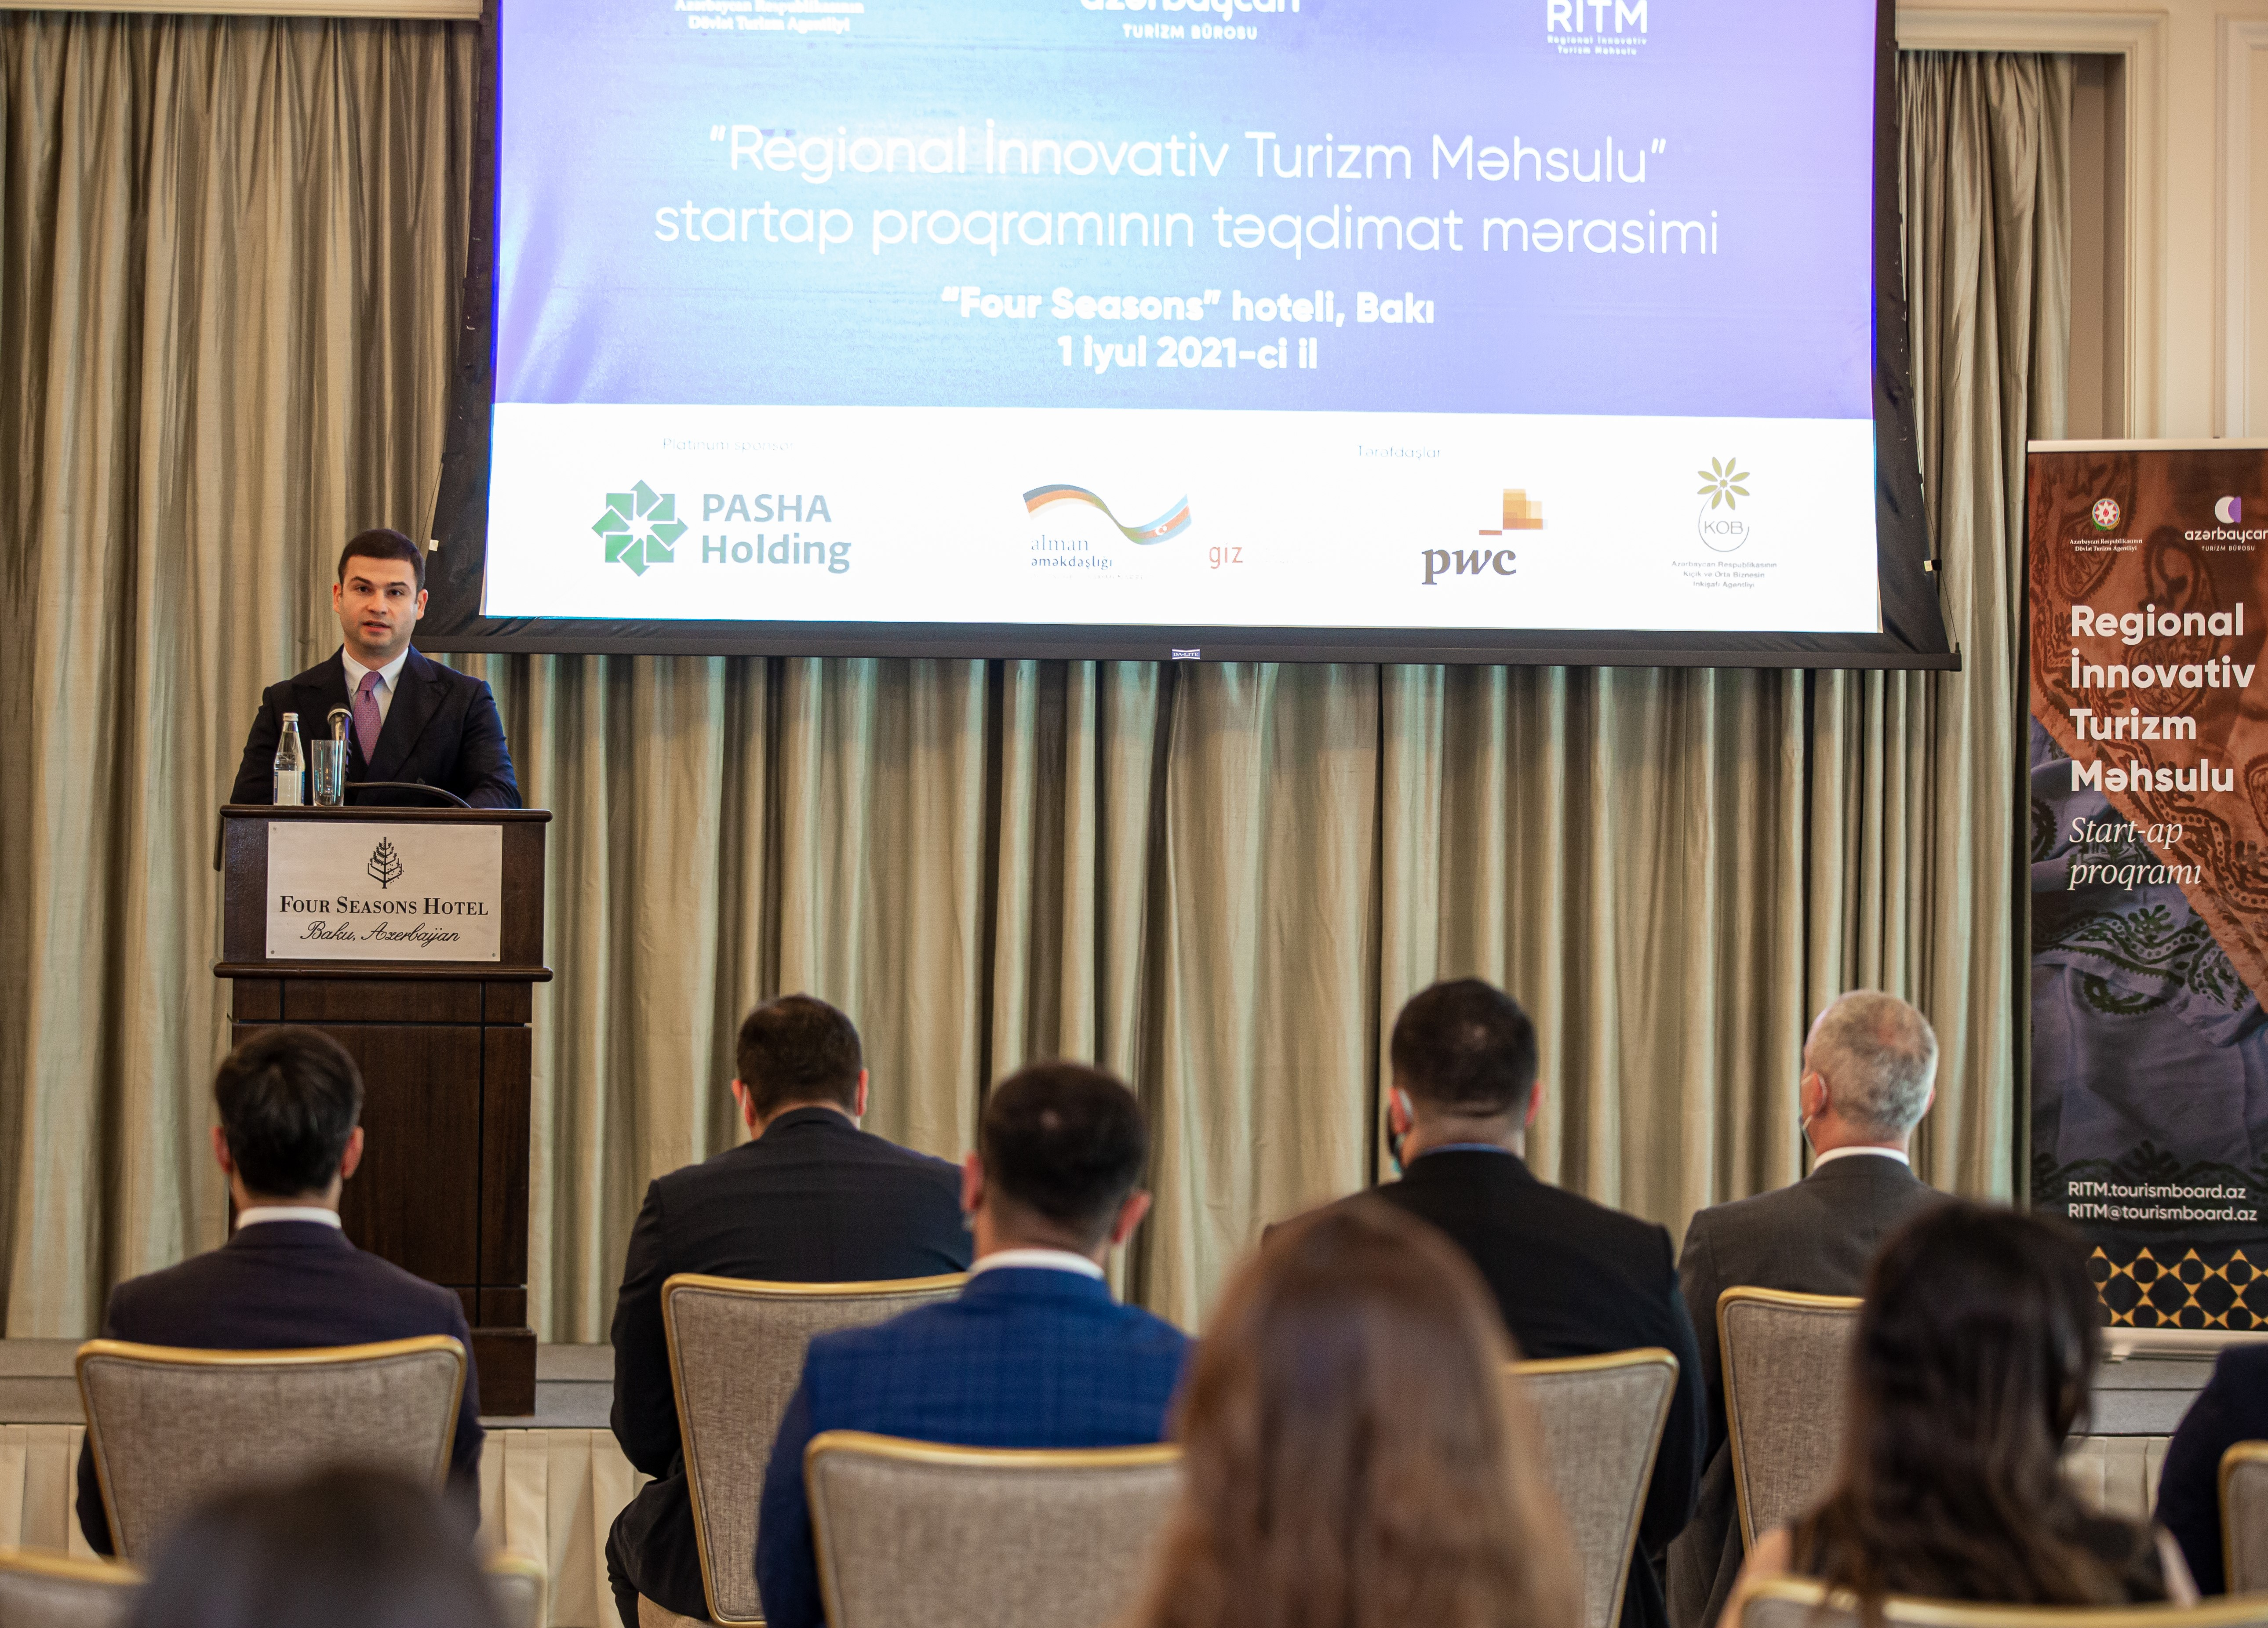 The RITP program aimed at developing regional tourism was presented to the public